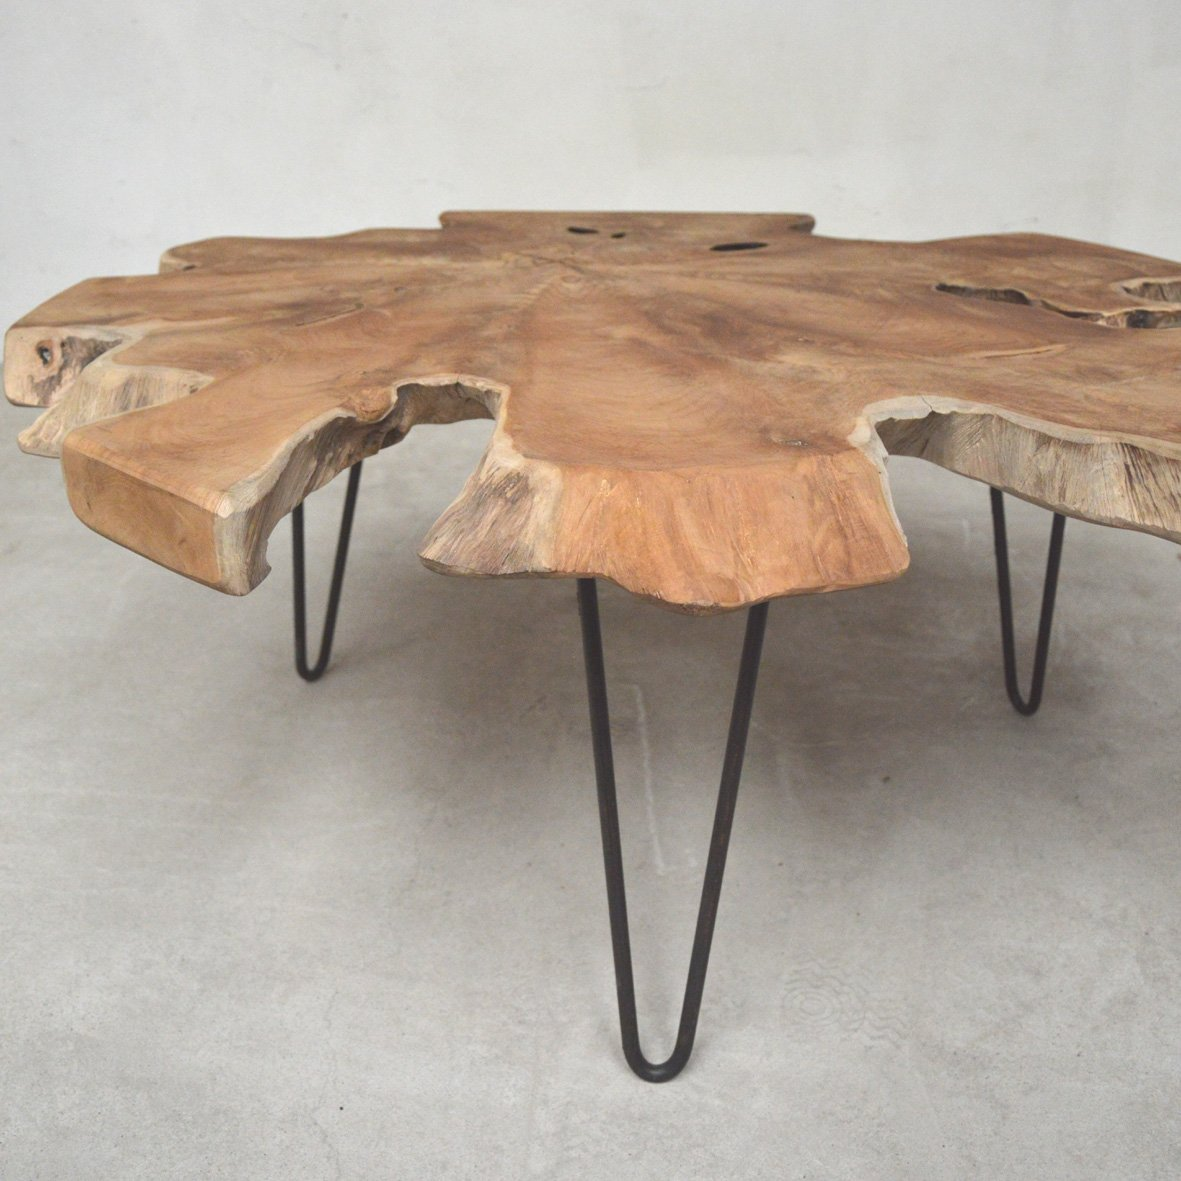 Vintage Teak Coffee Tables: Vintage Teak Coffee Table For Sale At Pamono